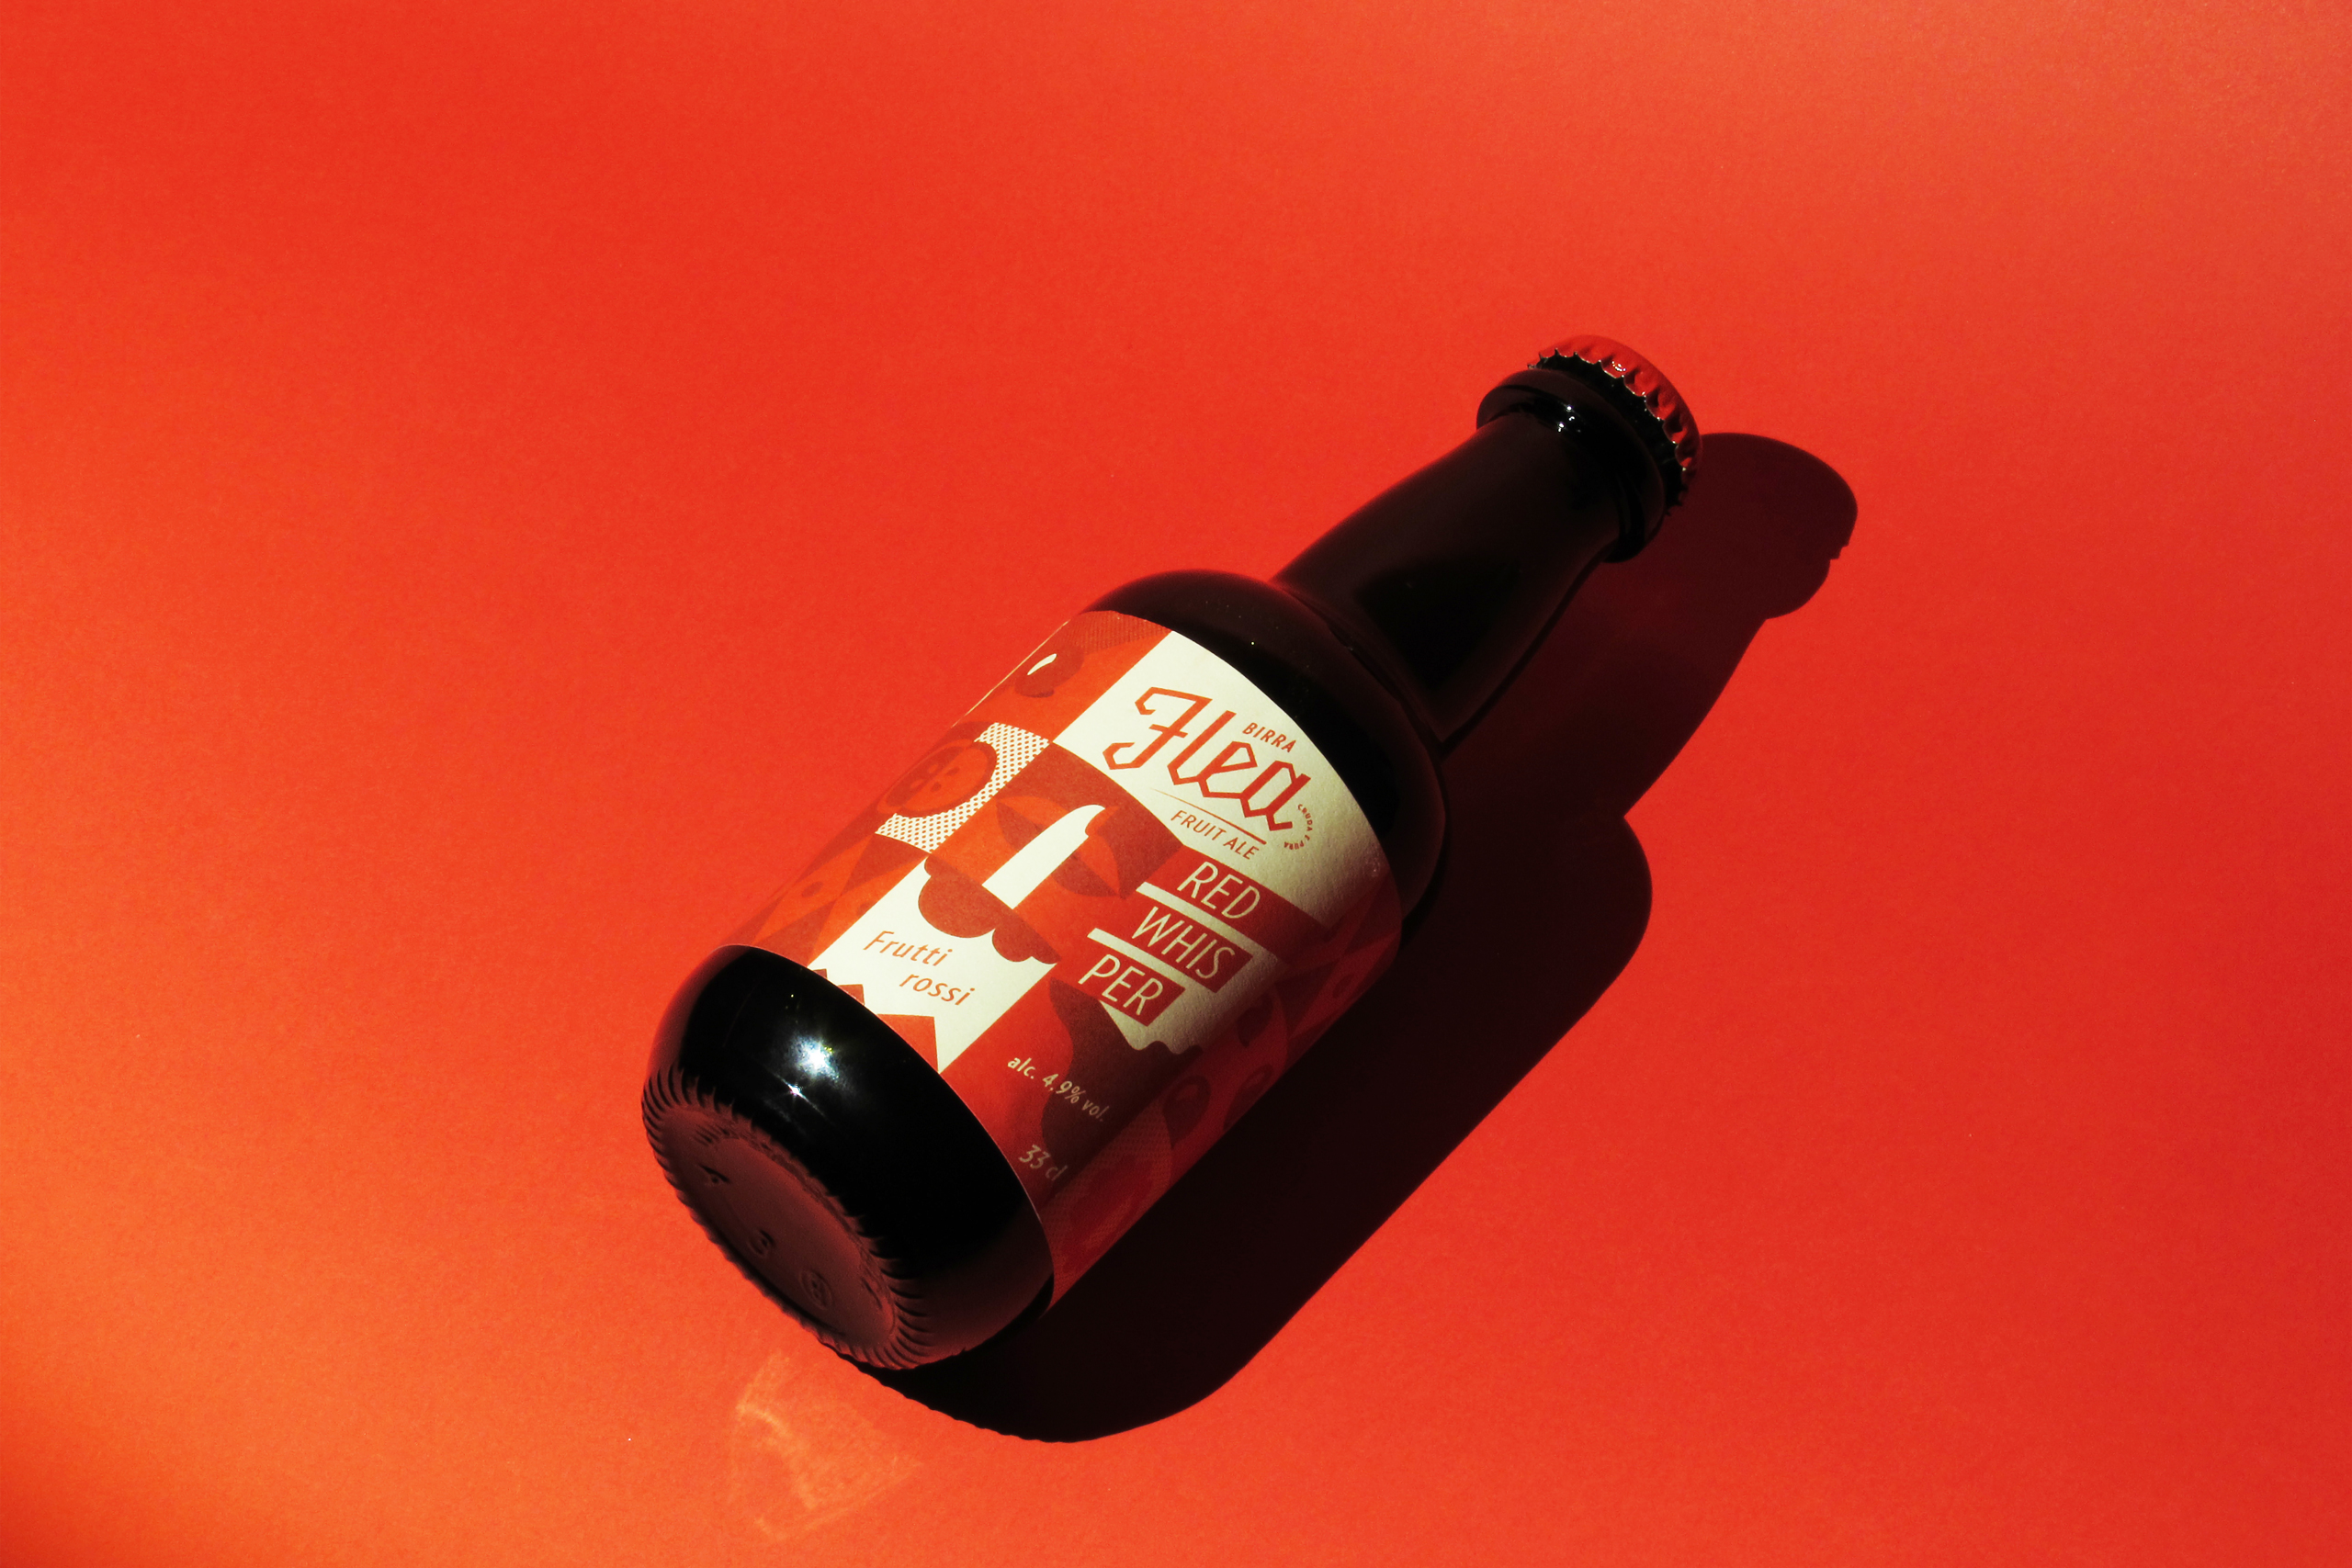 → Birra Flea / Fruit Ale